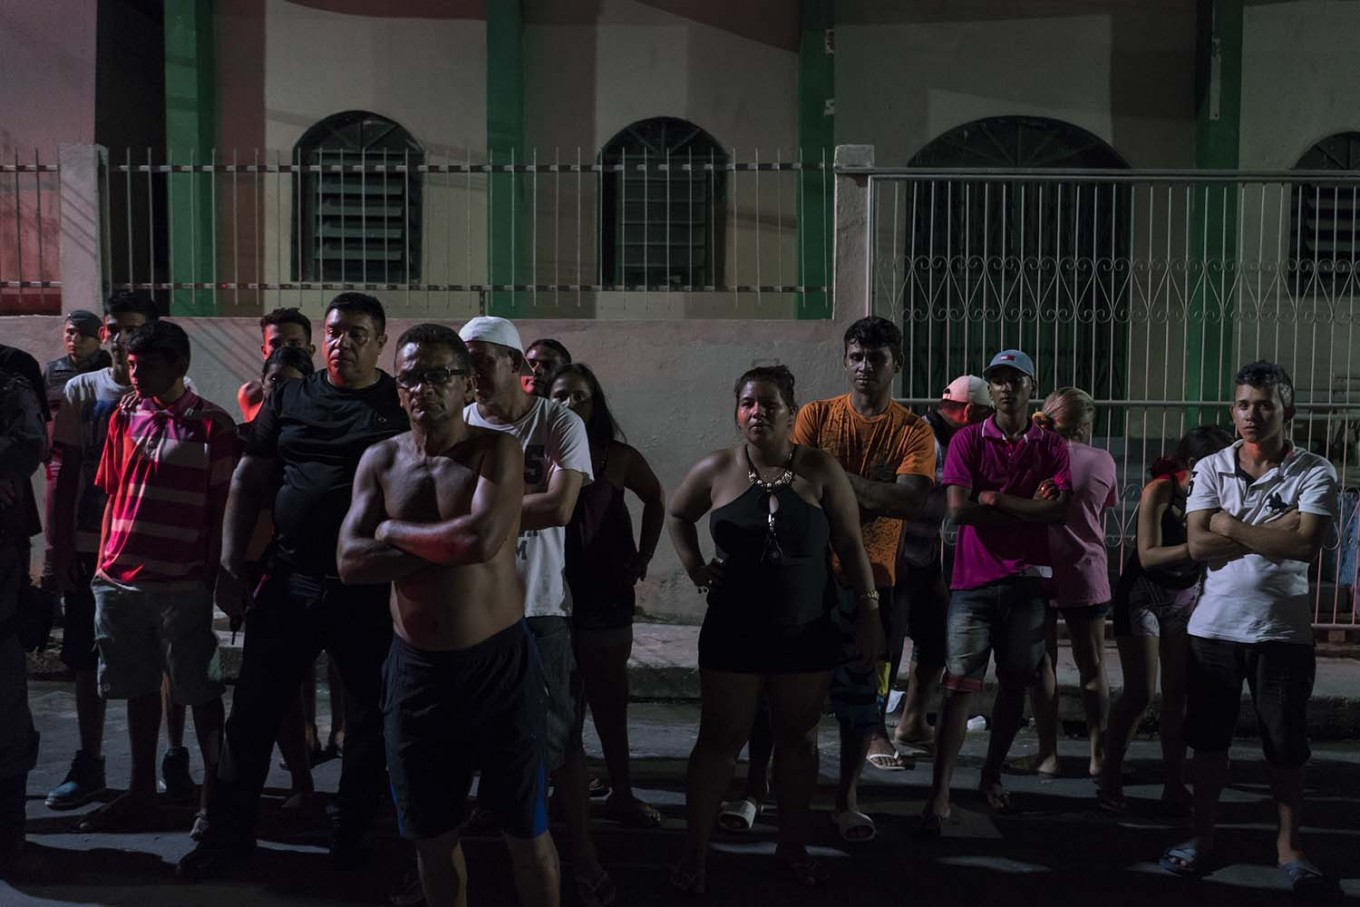 Photo: Brazil's crowded prisons feed gangs, violence - The ...